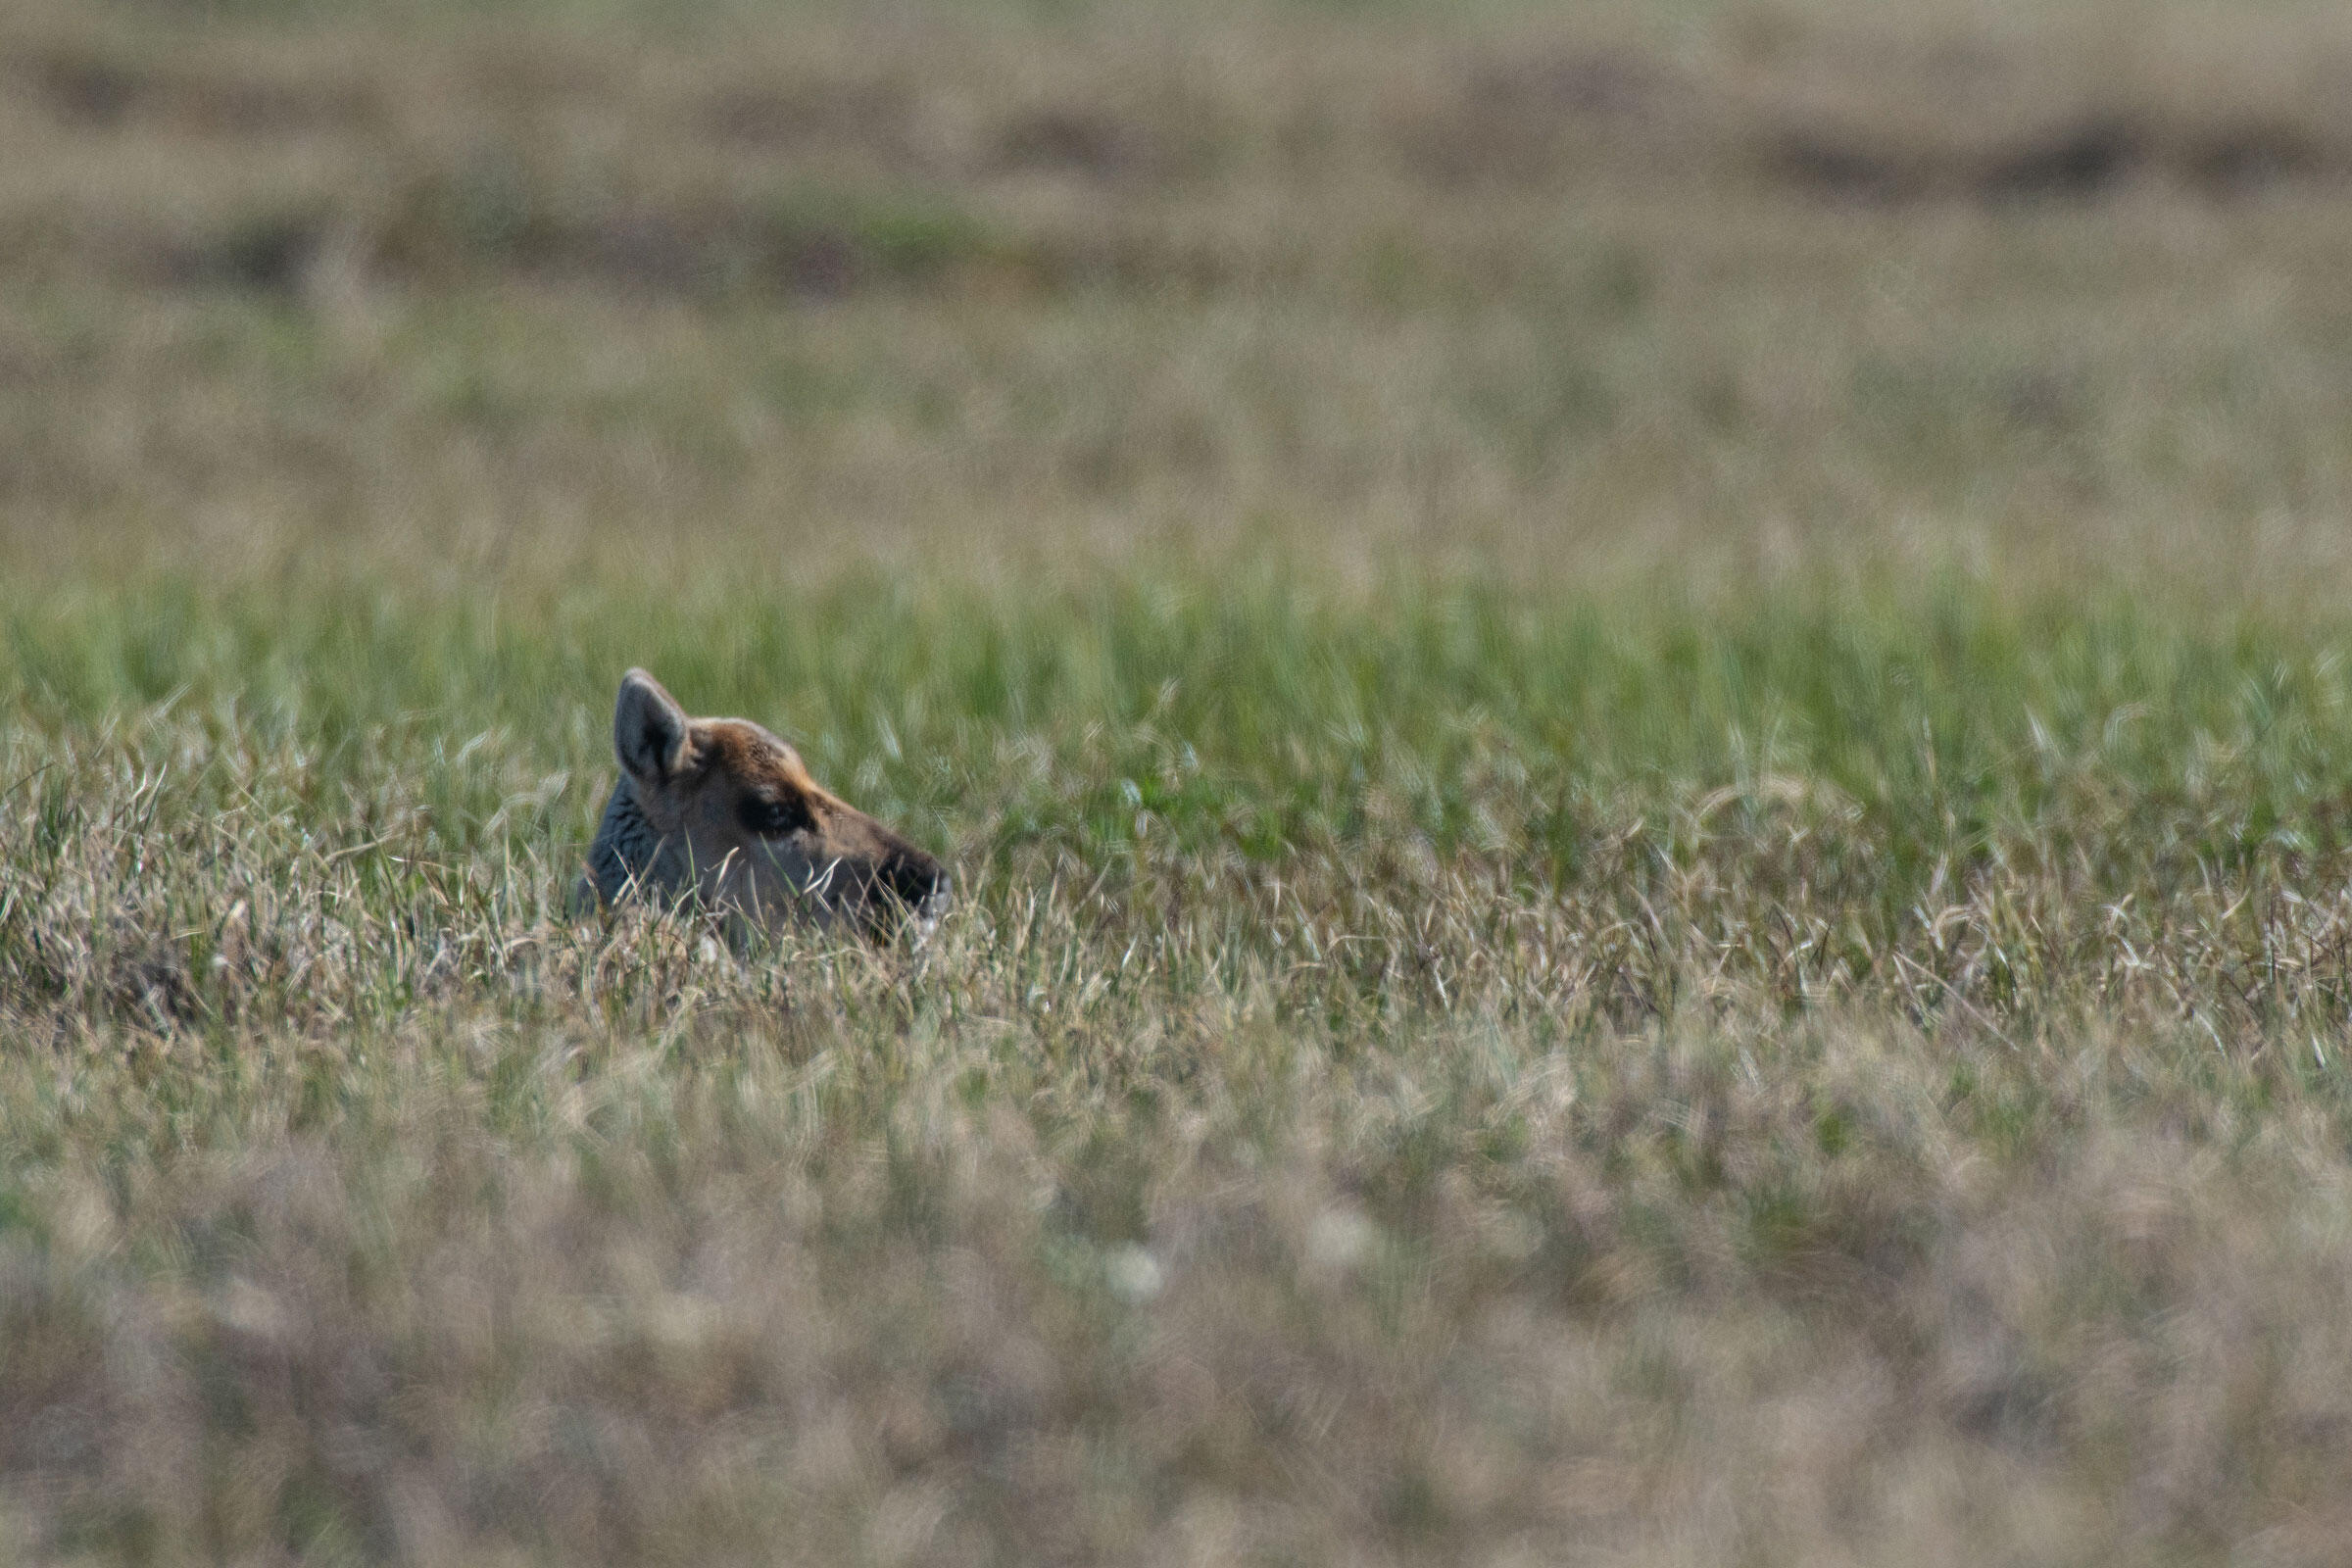 The head of a month-old porcupine caribou calf pops above the refuge grasses. Its mom is close by, feeding on the nutritious roots, grasses, and flowers provided by the coastal plain. Peter Mather